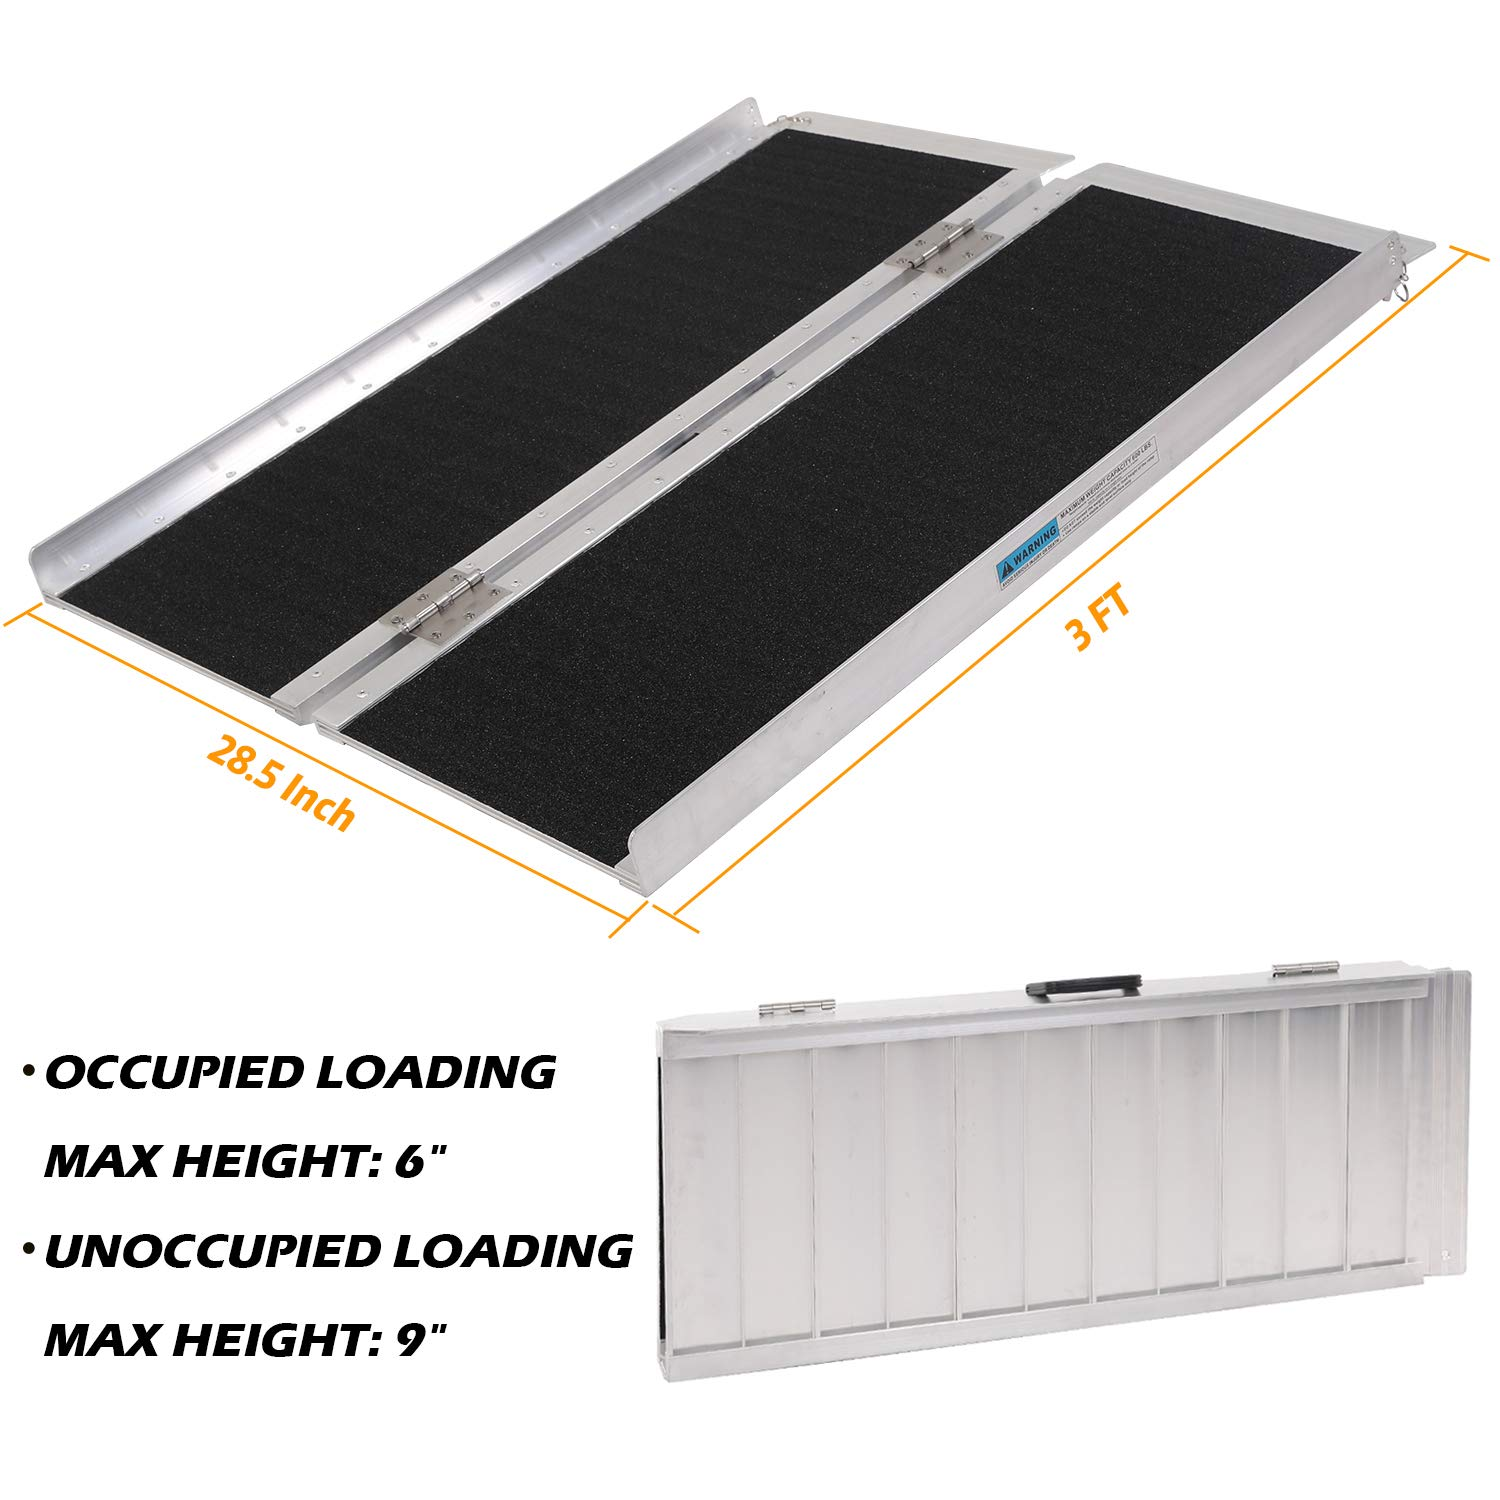 Portable Aluminum Wheelchair Ramp Foldable Separated Mobility Scooter Traction Ramp with Carrying Handle 3 Feet by Hromee (Image #5)